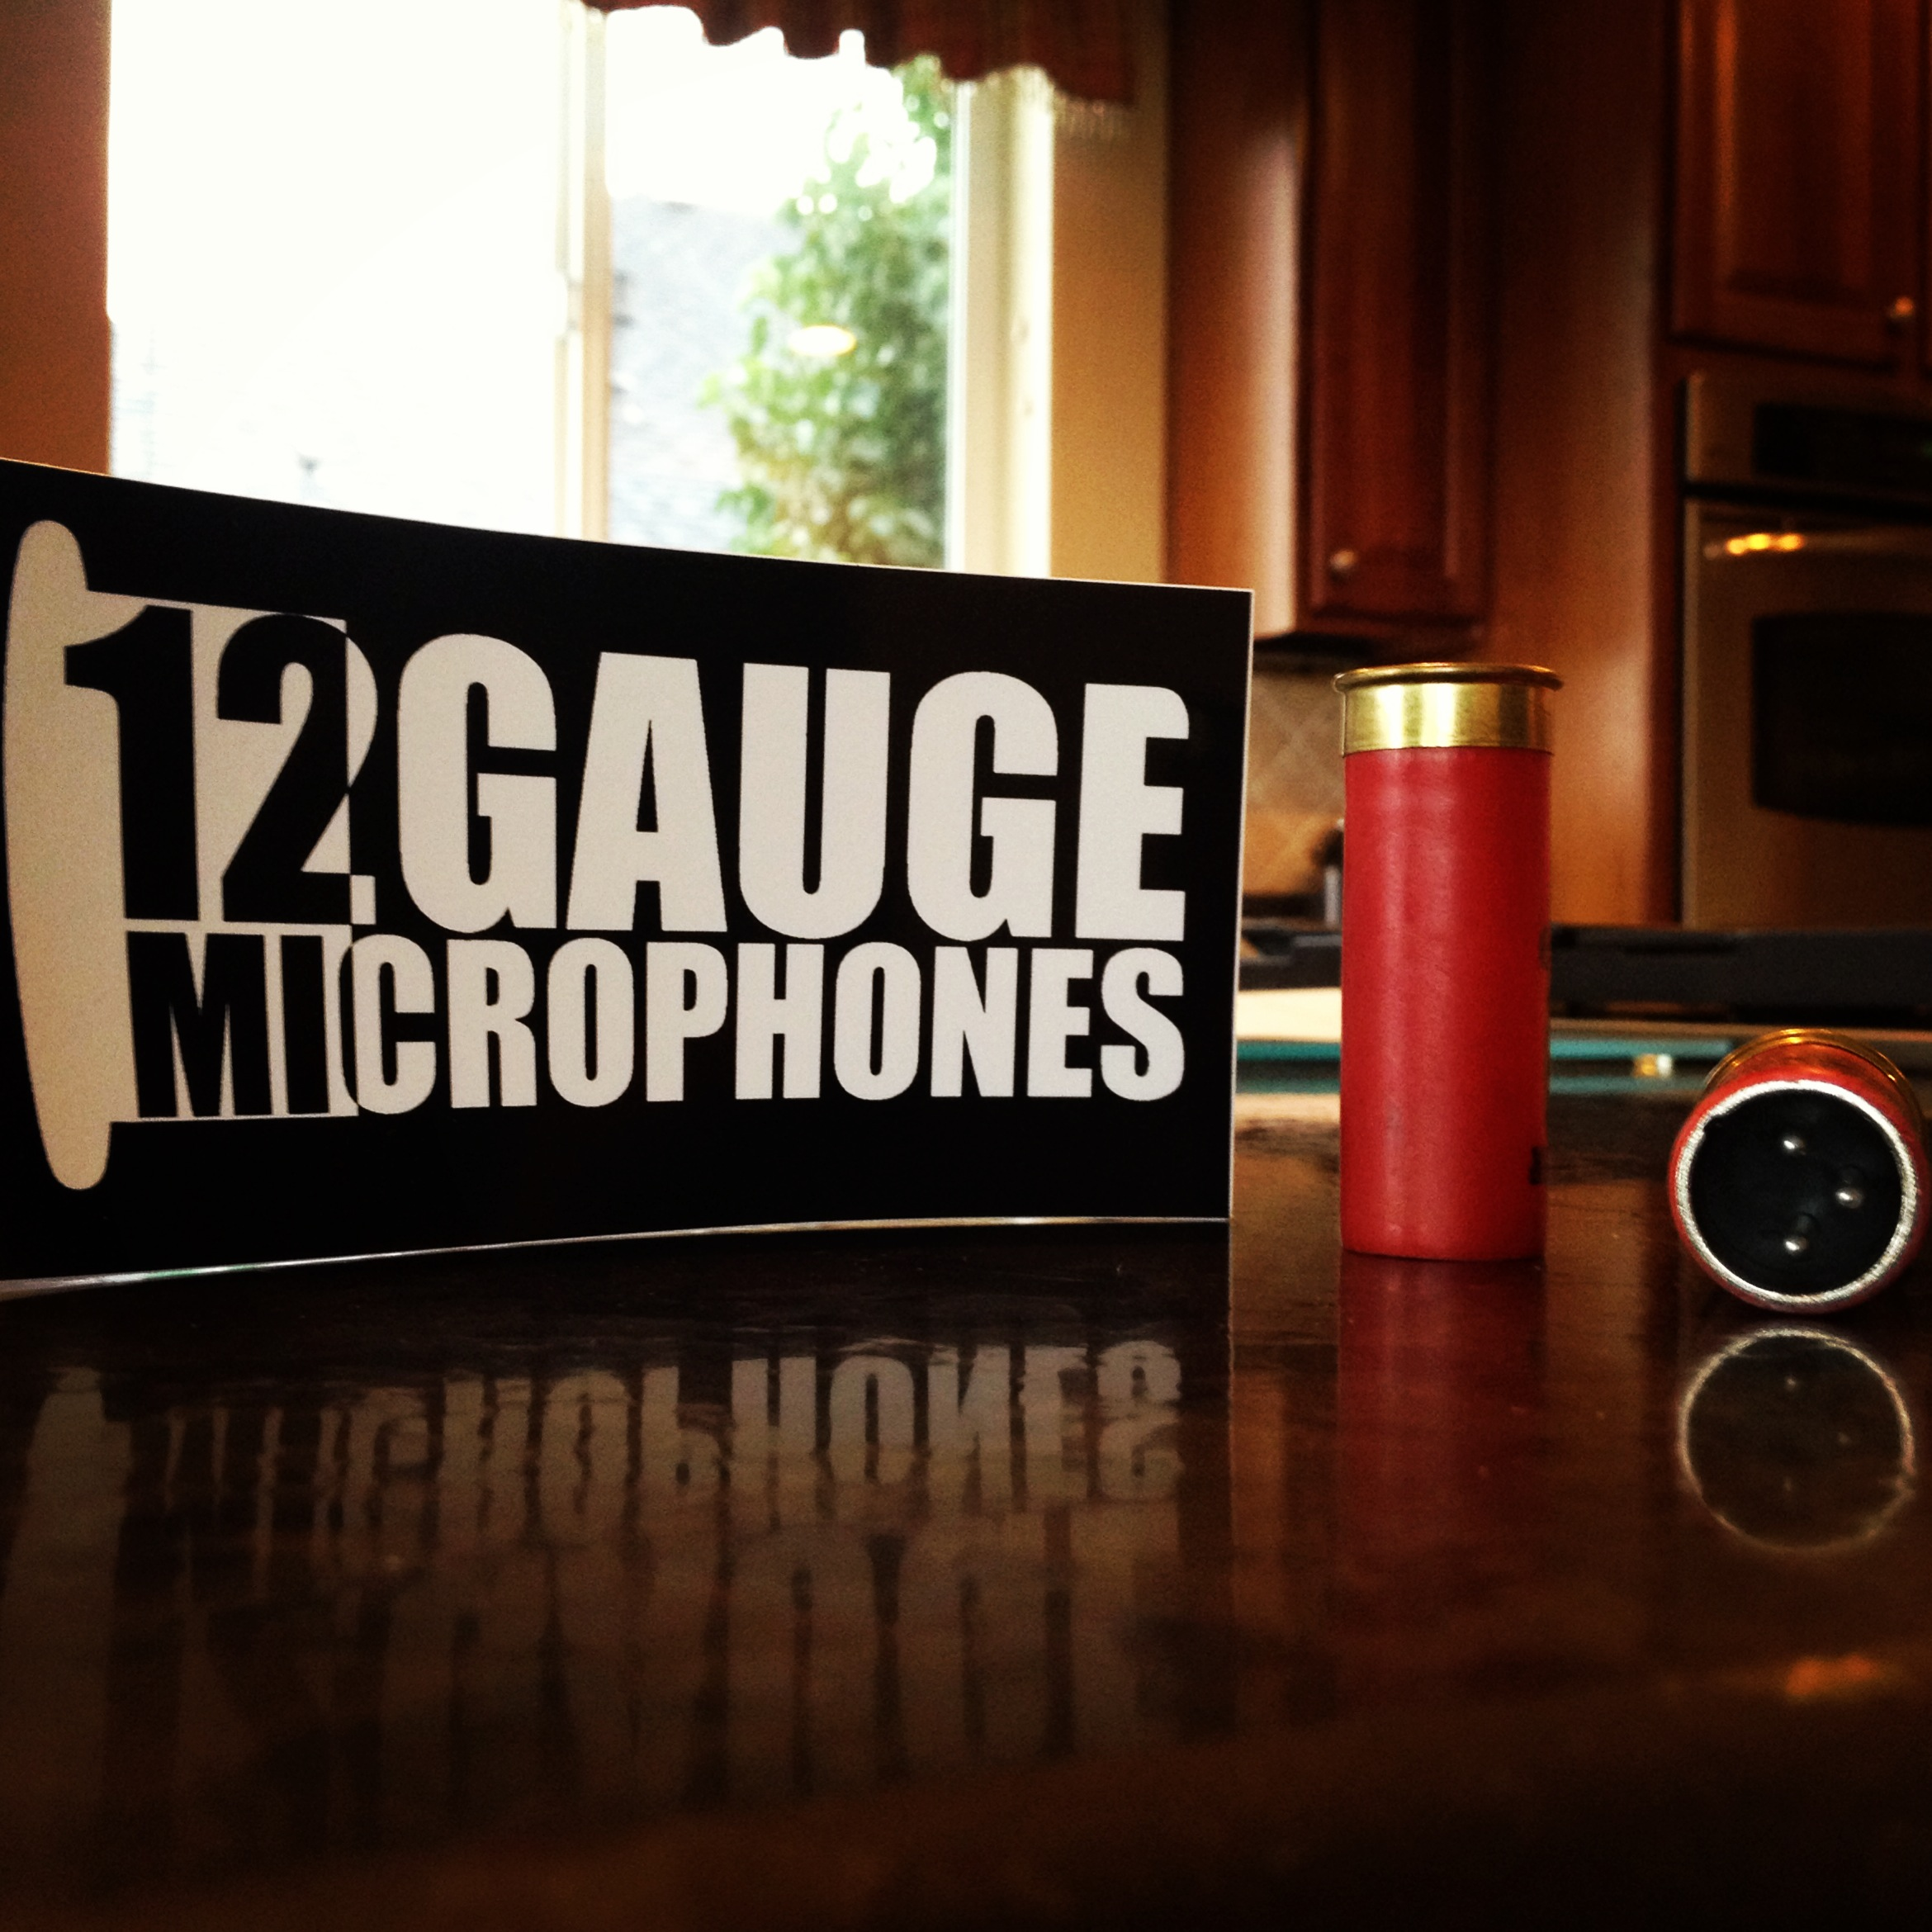 Check out these awesome new mics. The are made out of reclaimed shotgun shells and they sound awesome. Check out 12 Gauge Microphones.  http://www.12gaugemicrophones.com/